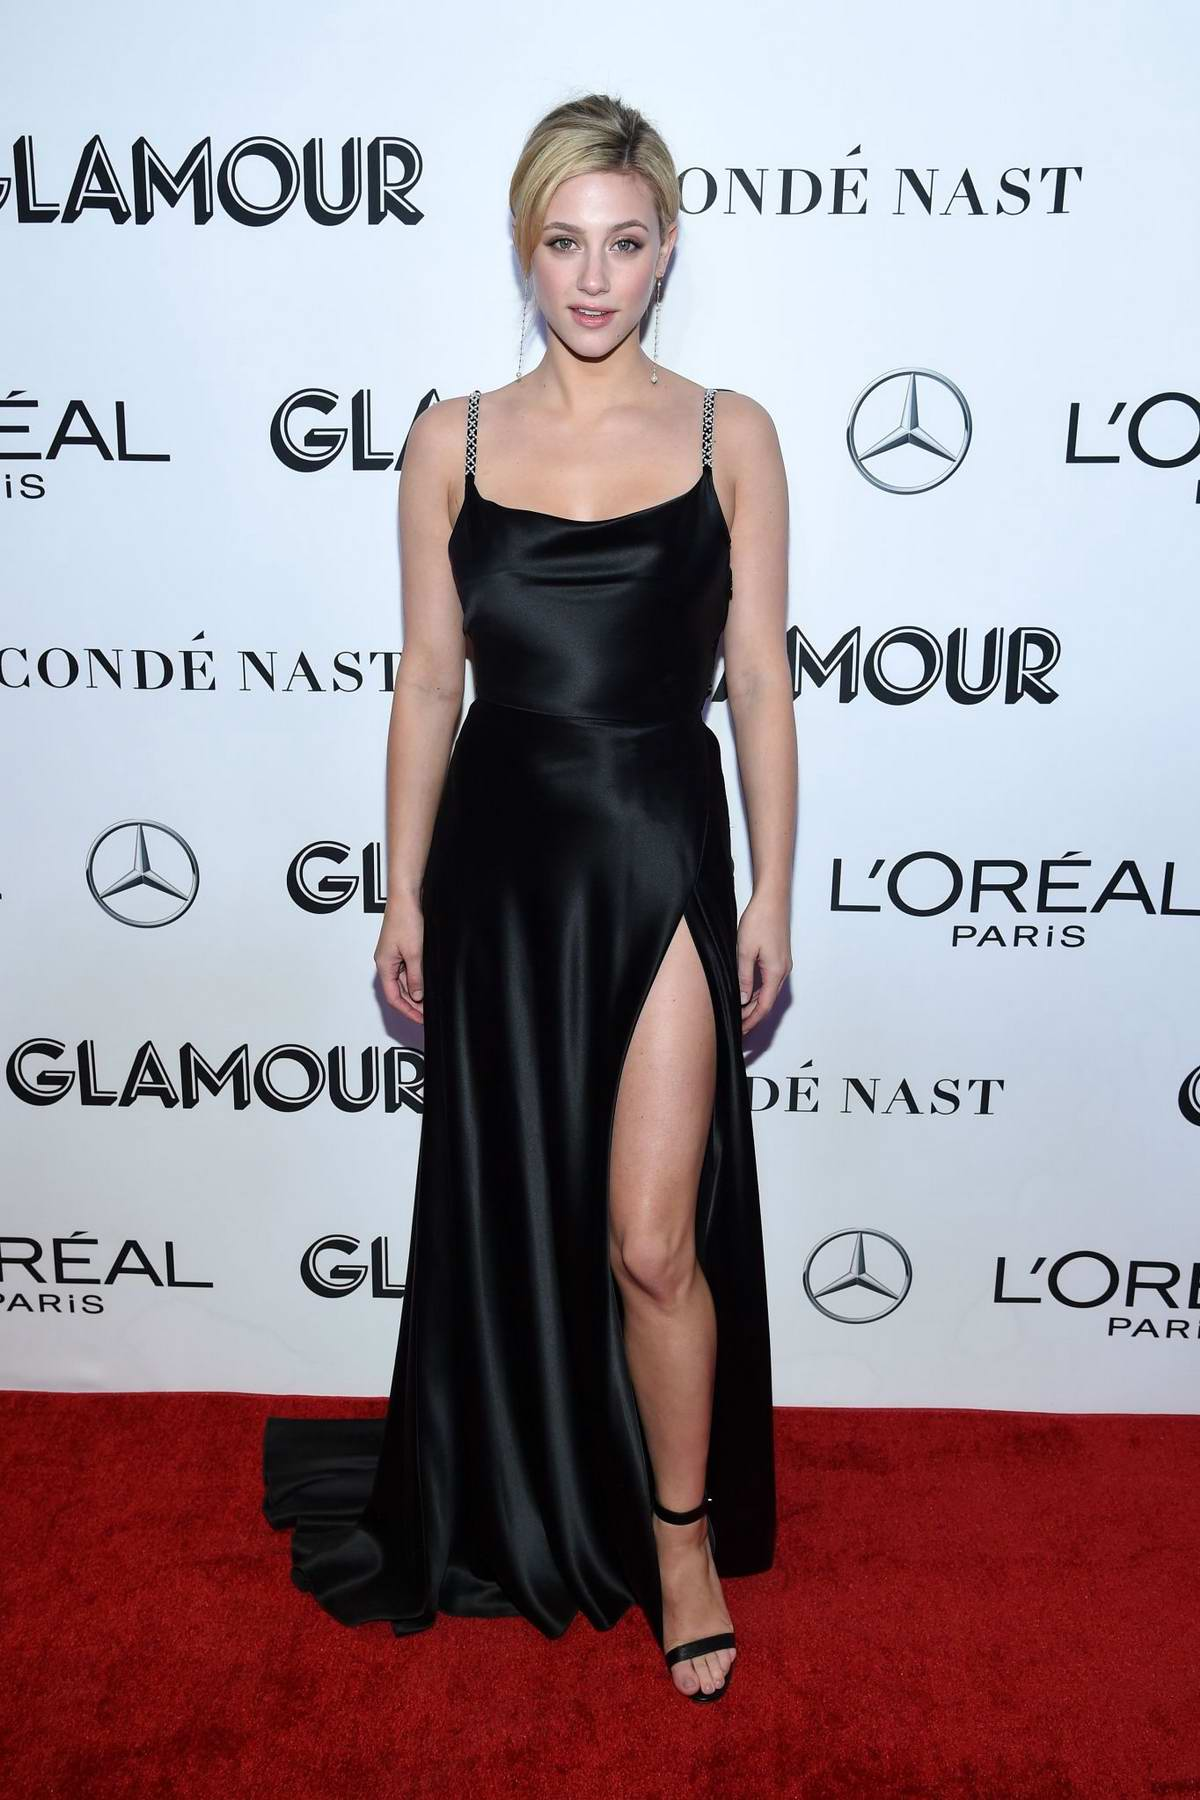 Lili Reinhart attends the Glamour Women of the Year Awards 2018 in New York City